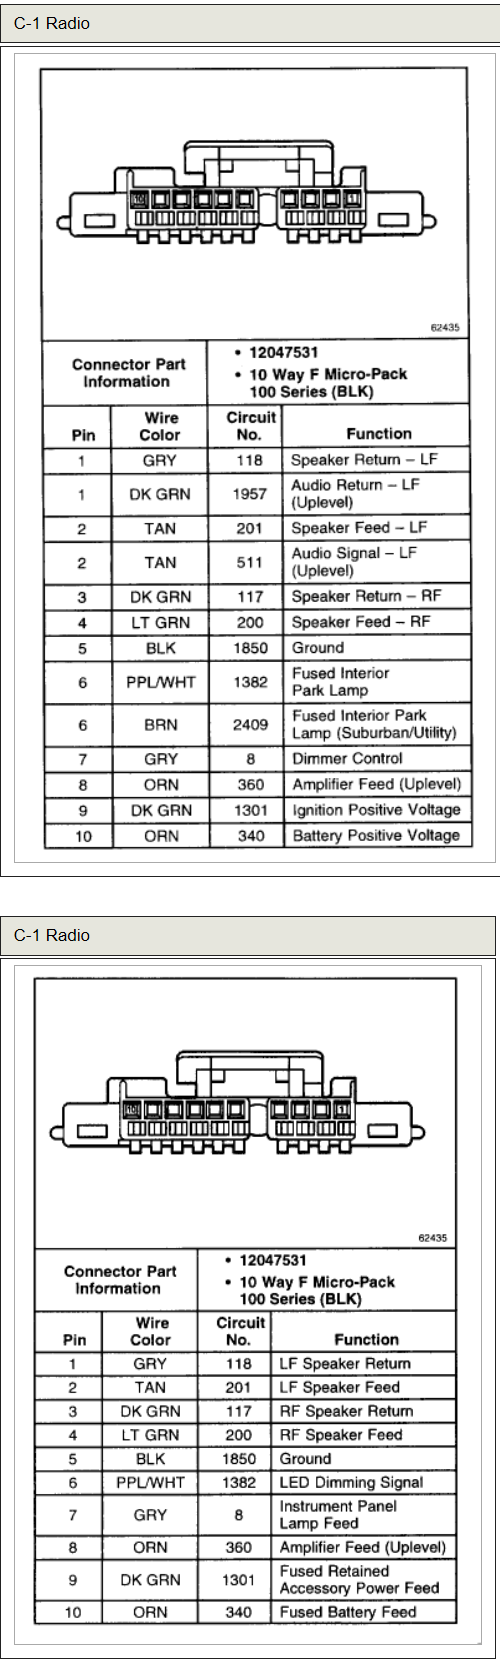 Chevrolet Car Radio Stereo Audio Wiring Diagram Autoradio Connector Ford Wire Installation Schematic Schema Esquema De Conexiones Anschlusskammern Konektor